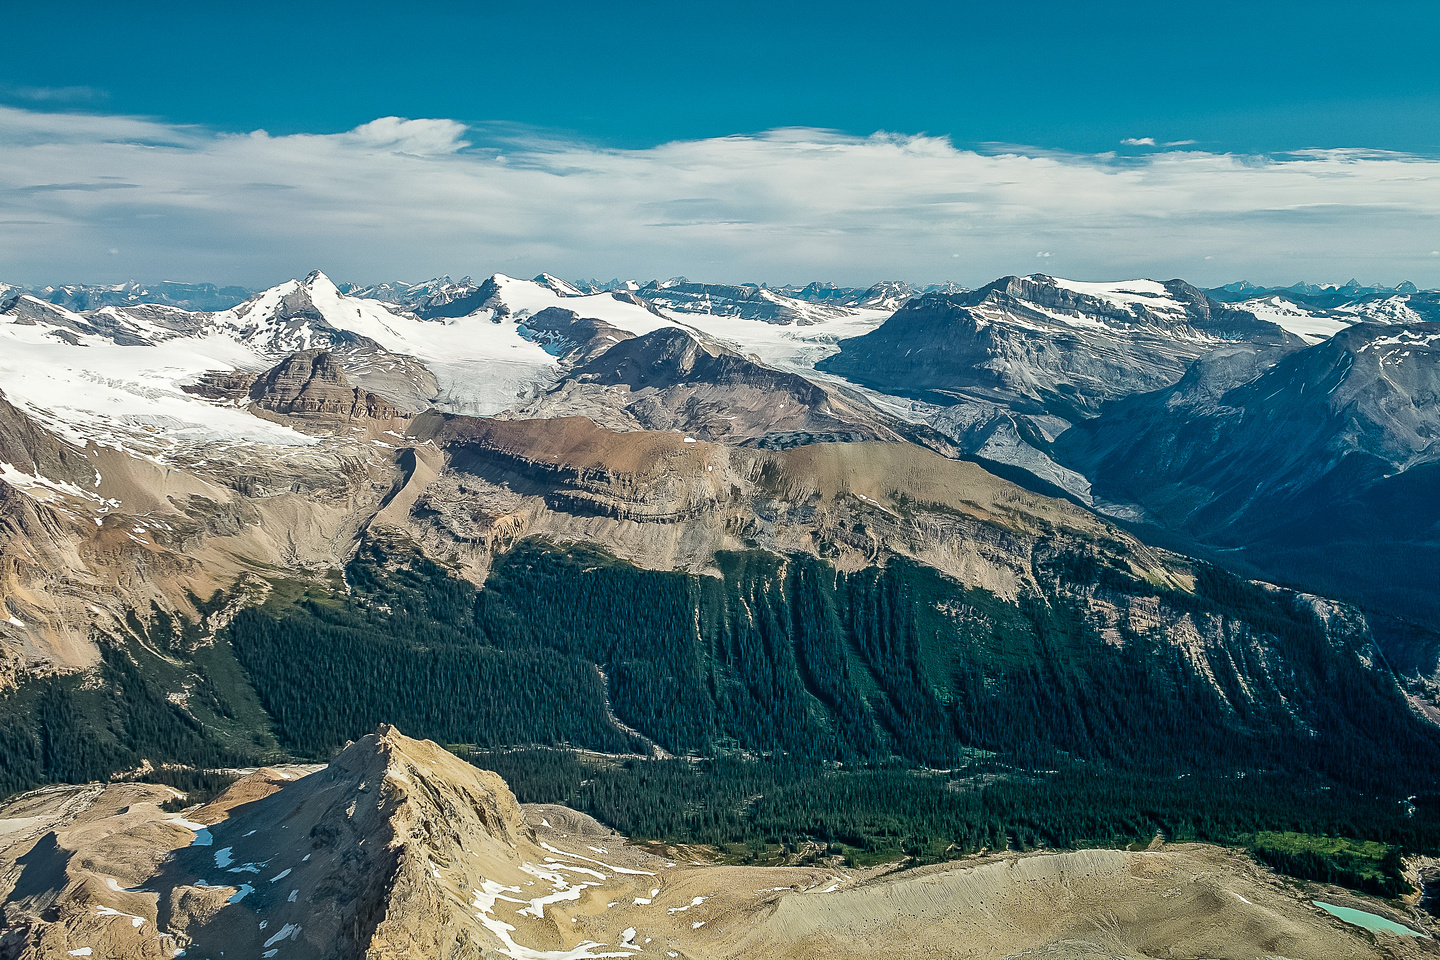 Views over the Little Yoho River and the Whaleback towards the Wapta Icefield.